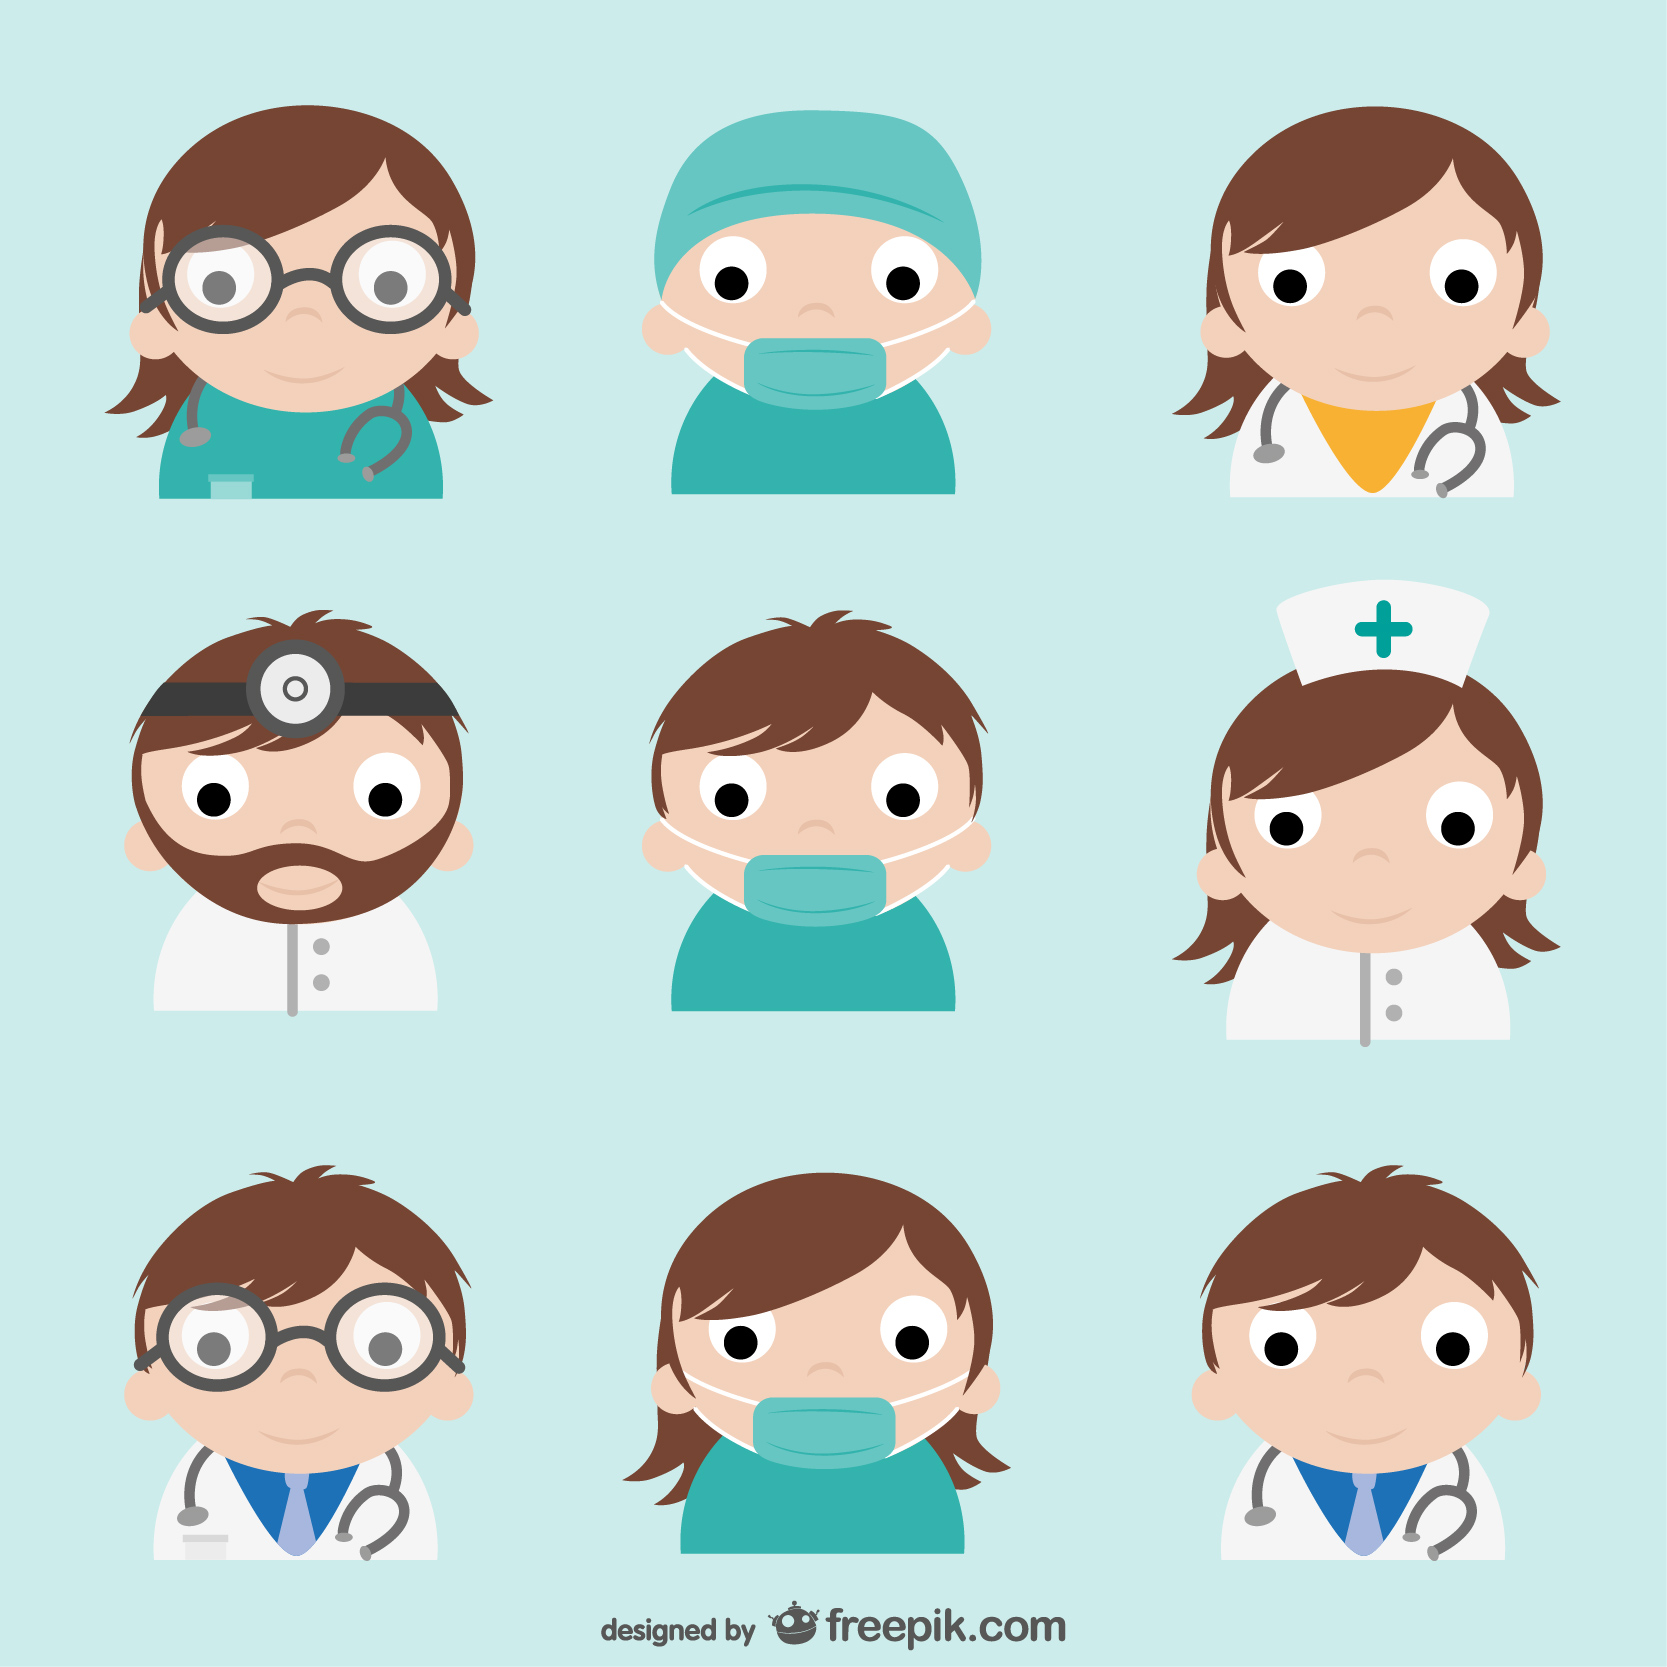 http://www.freepik.com/free-vector/doctor-characters-pack_738193.htm#term=hospital&page=3&position=1